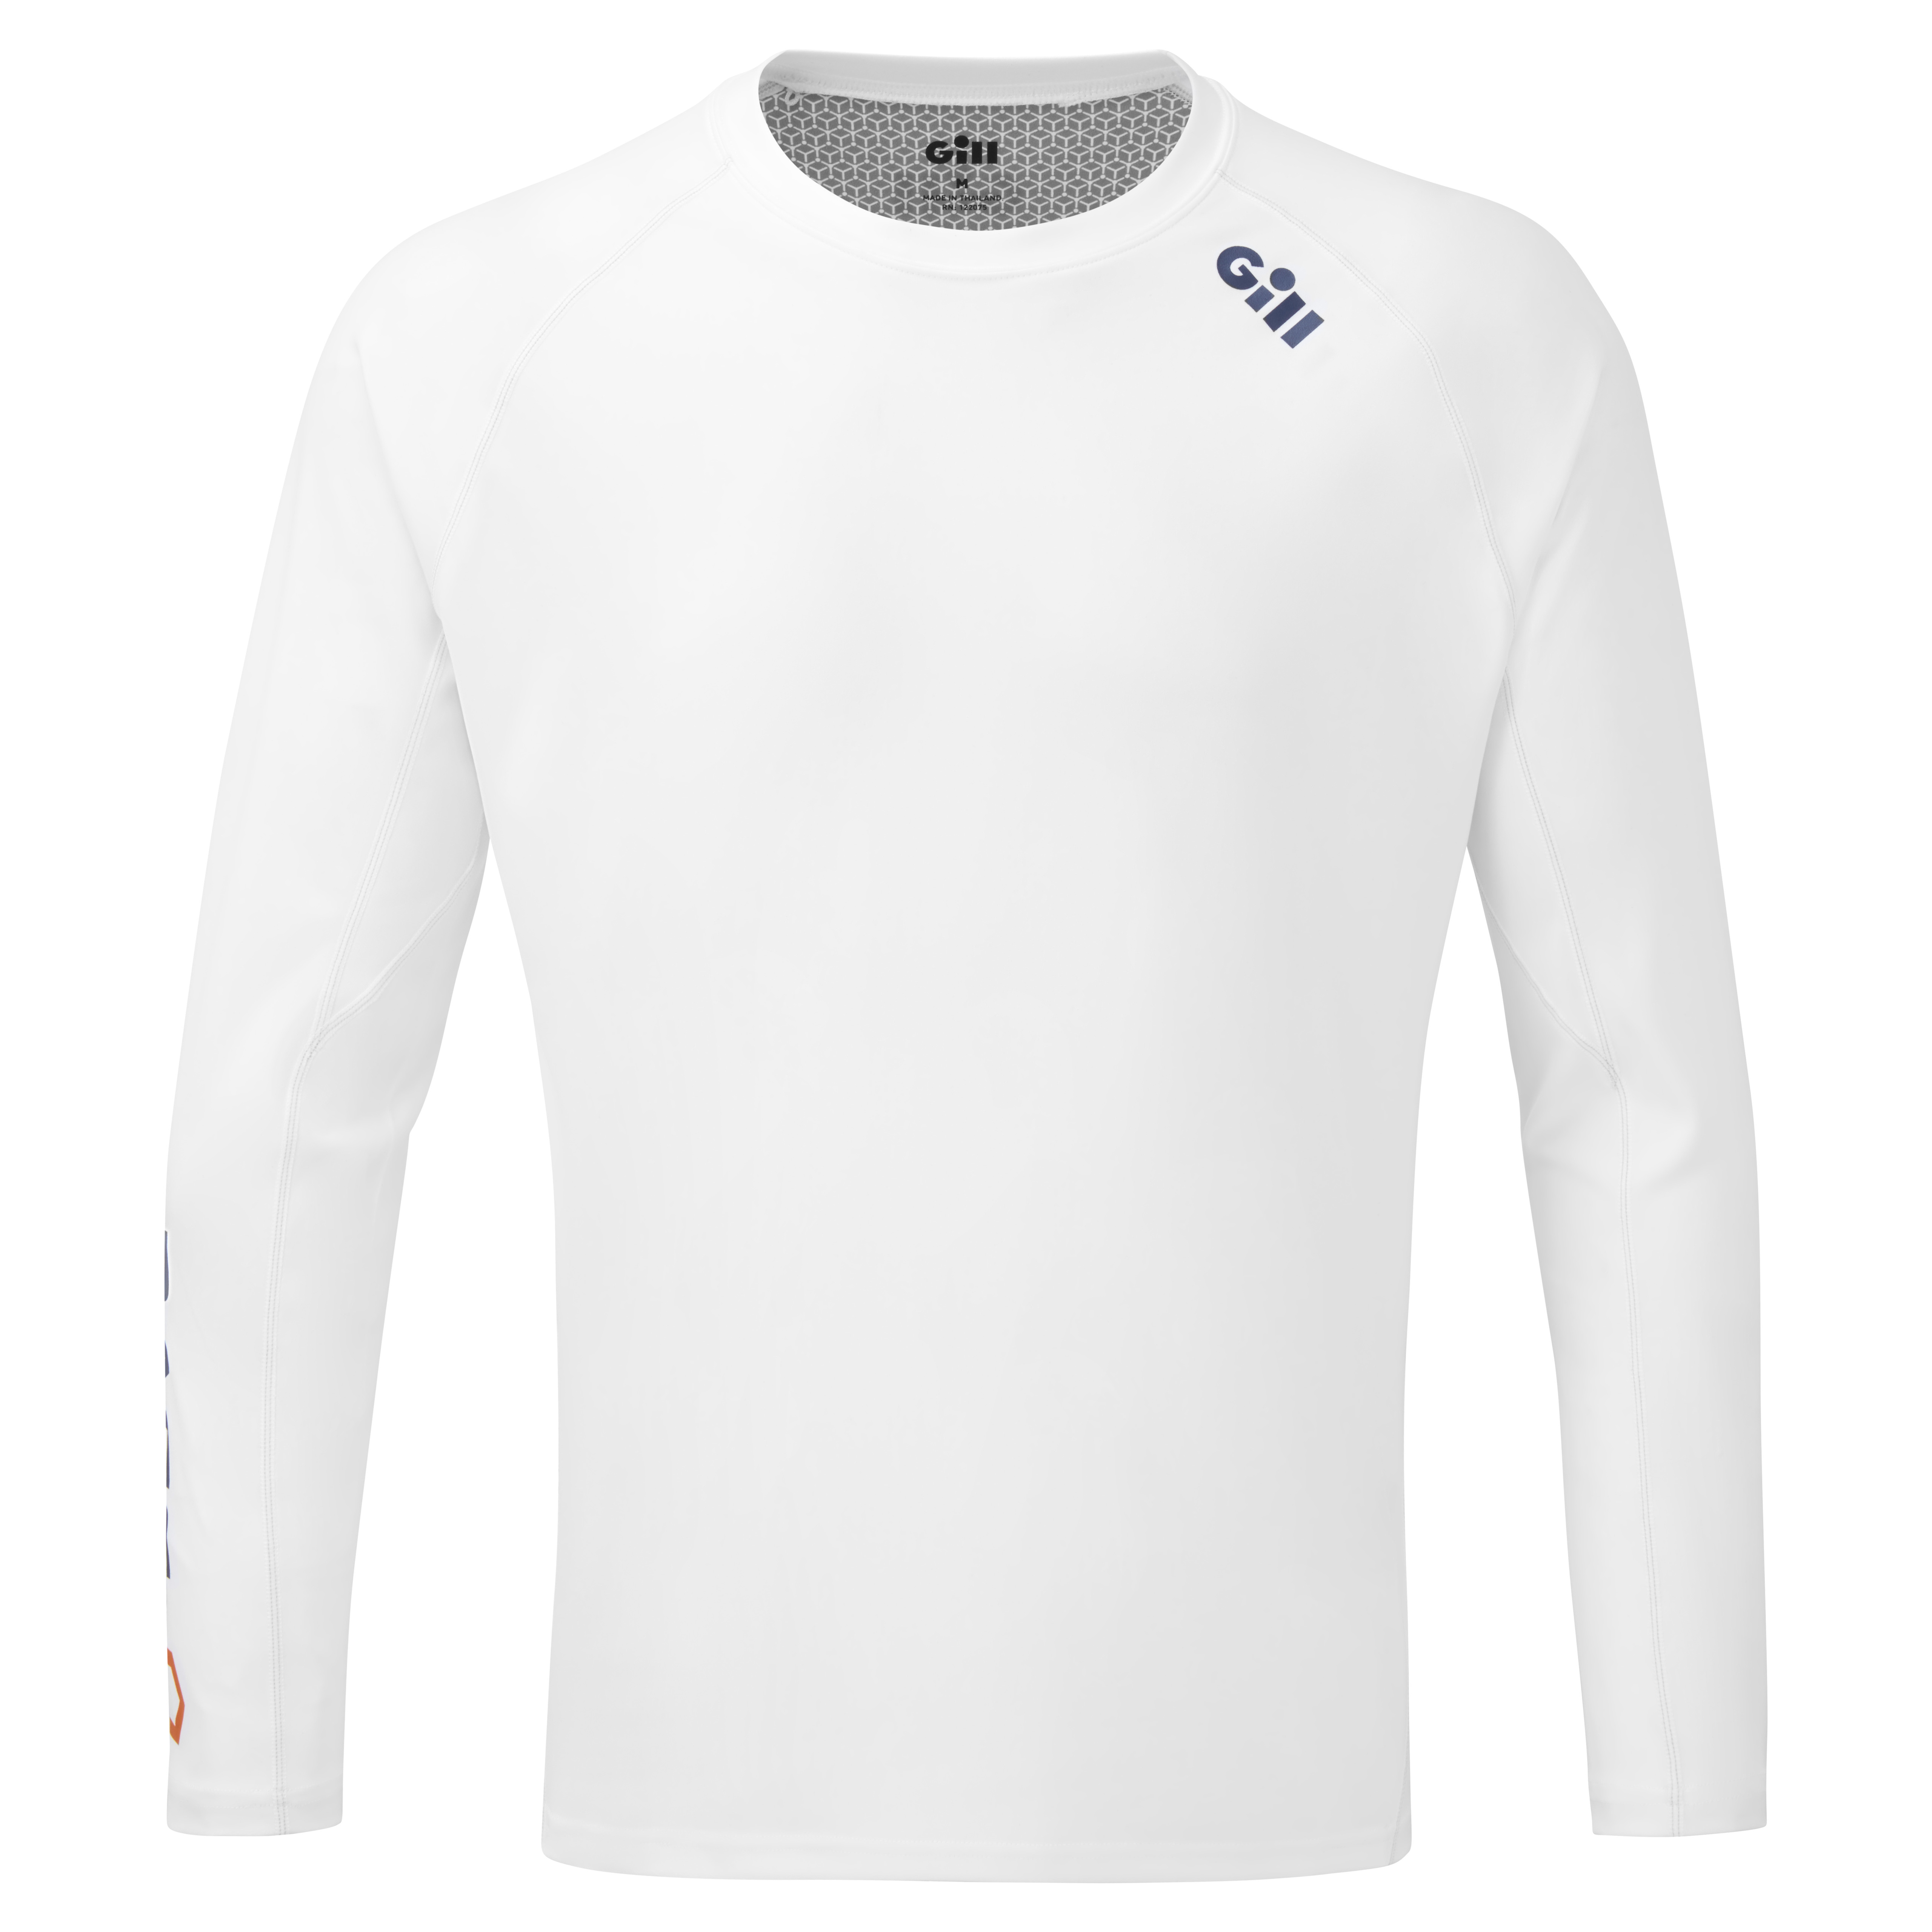 T-shirt Race Manches Longues Femme - RS37-WHI01-1.jpg